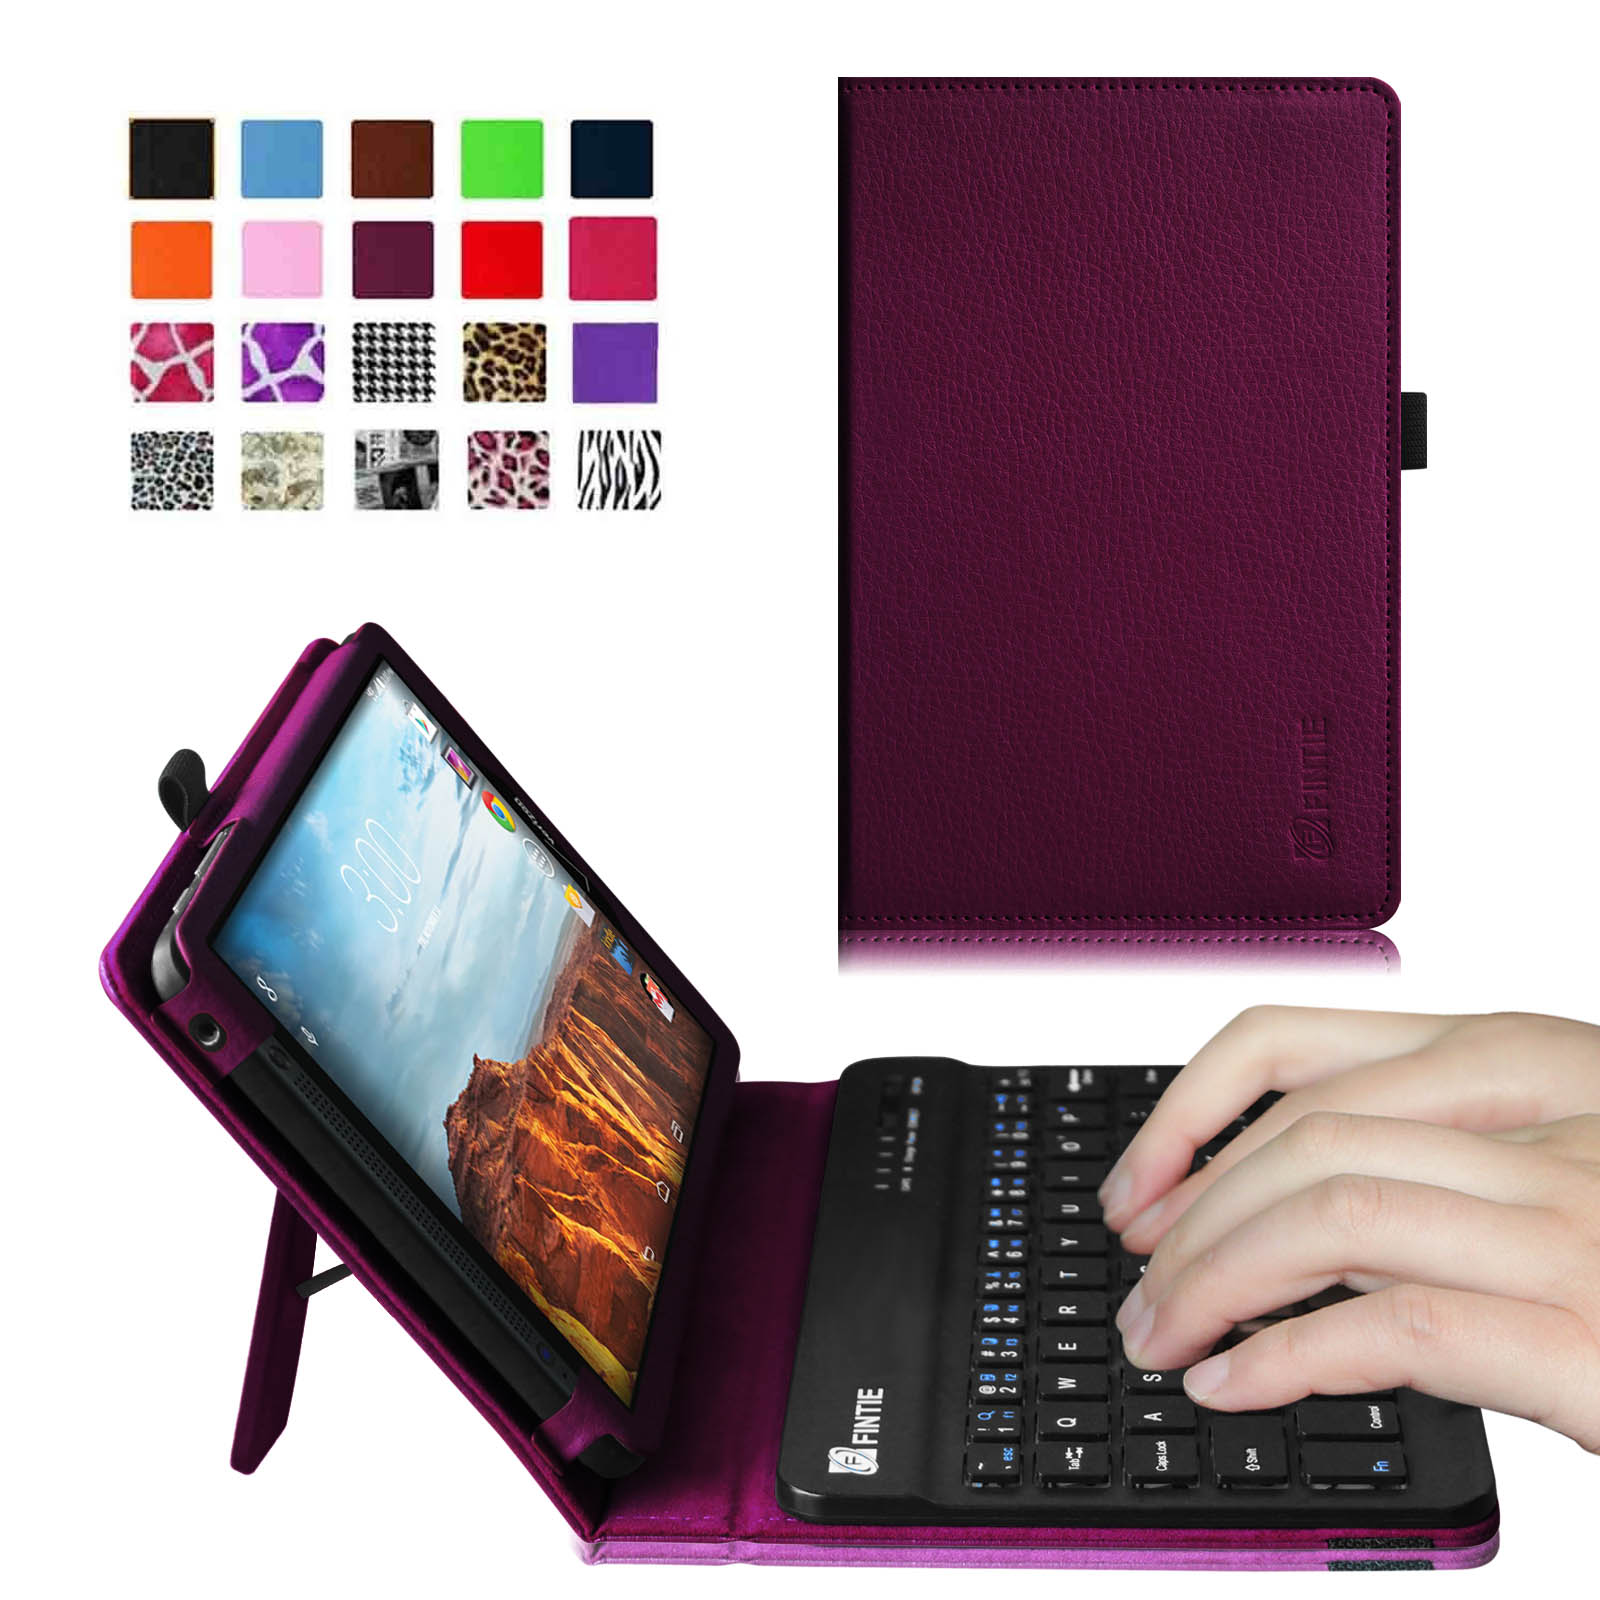 Verizon Ellipsis 8 4G LTE Tablet Keyboard Case - Fintie Slim Fit PU Leather Stand Cover with Removable Keyboard, Purple